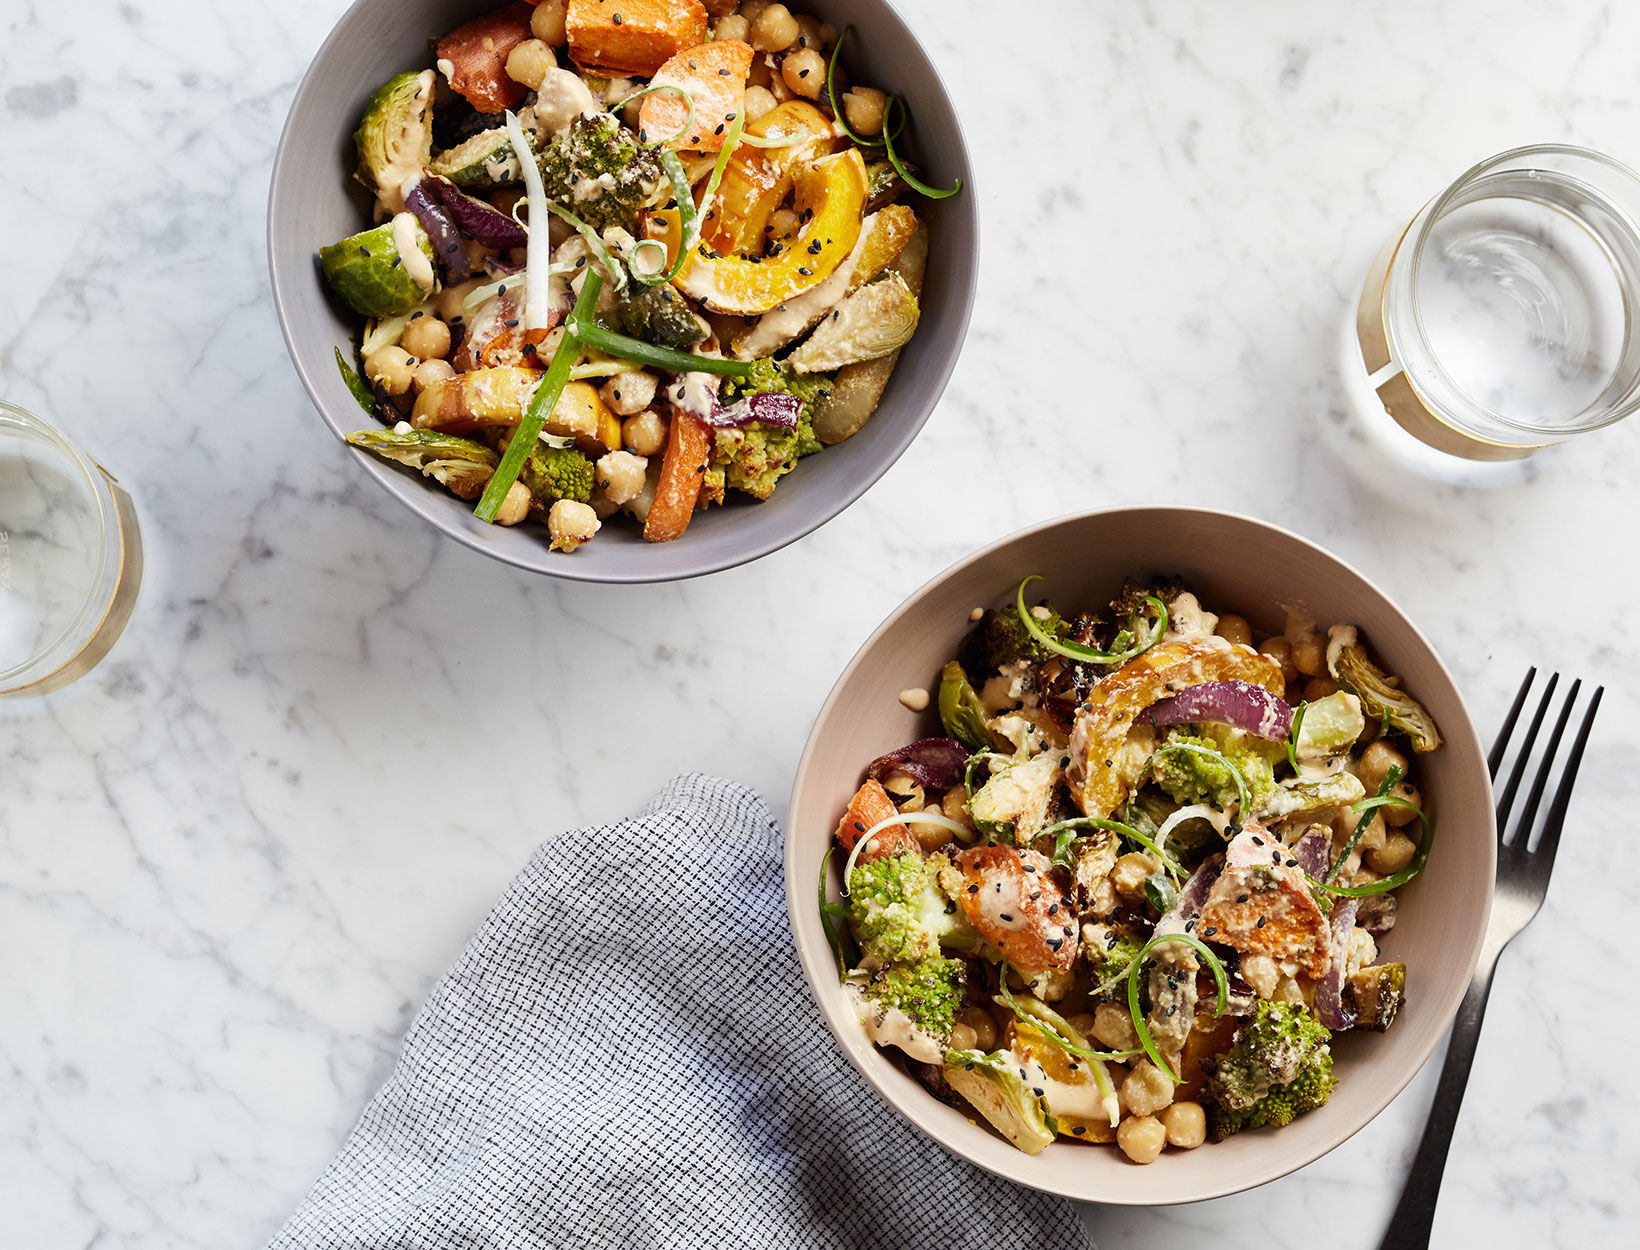 Tossed Peanut-y Roasted Vegetable Bowls